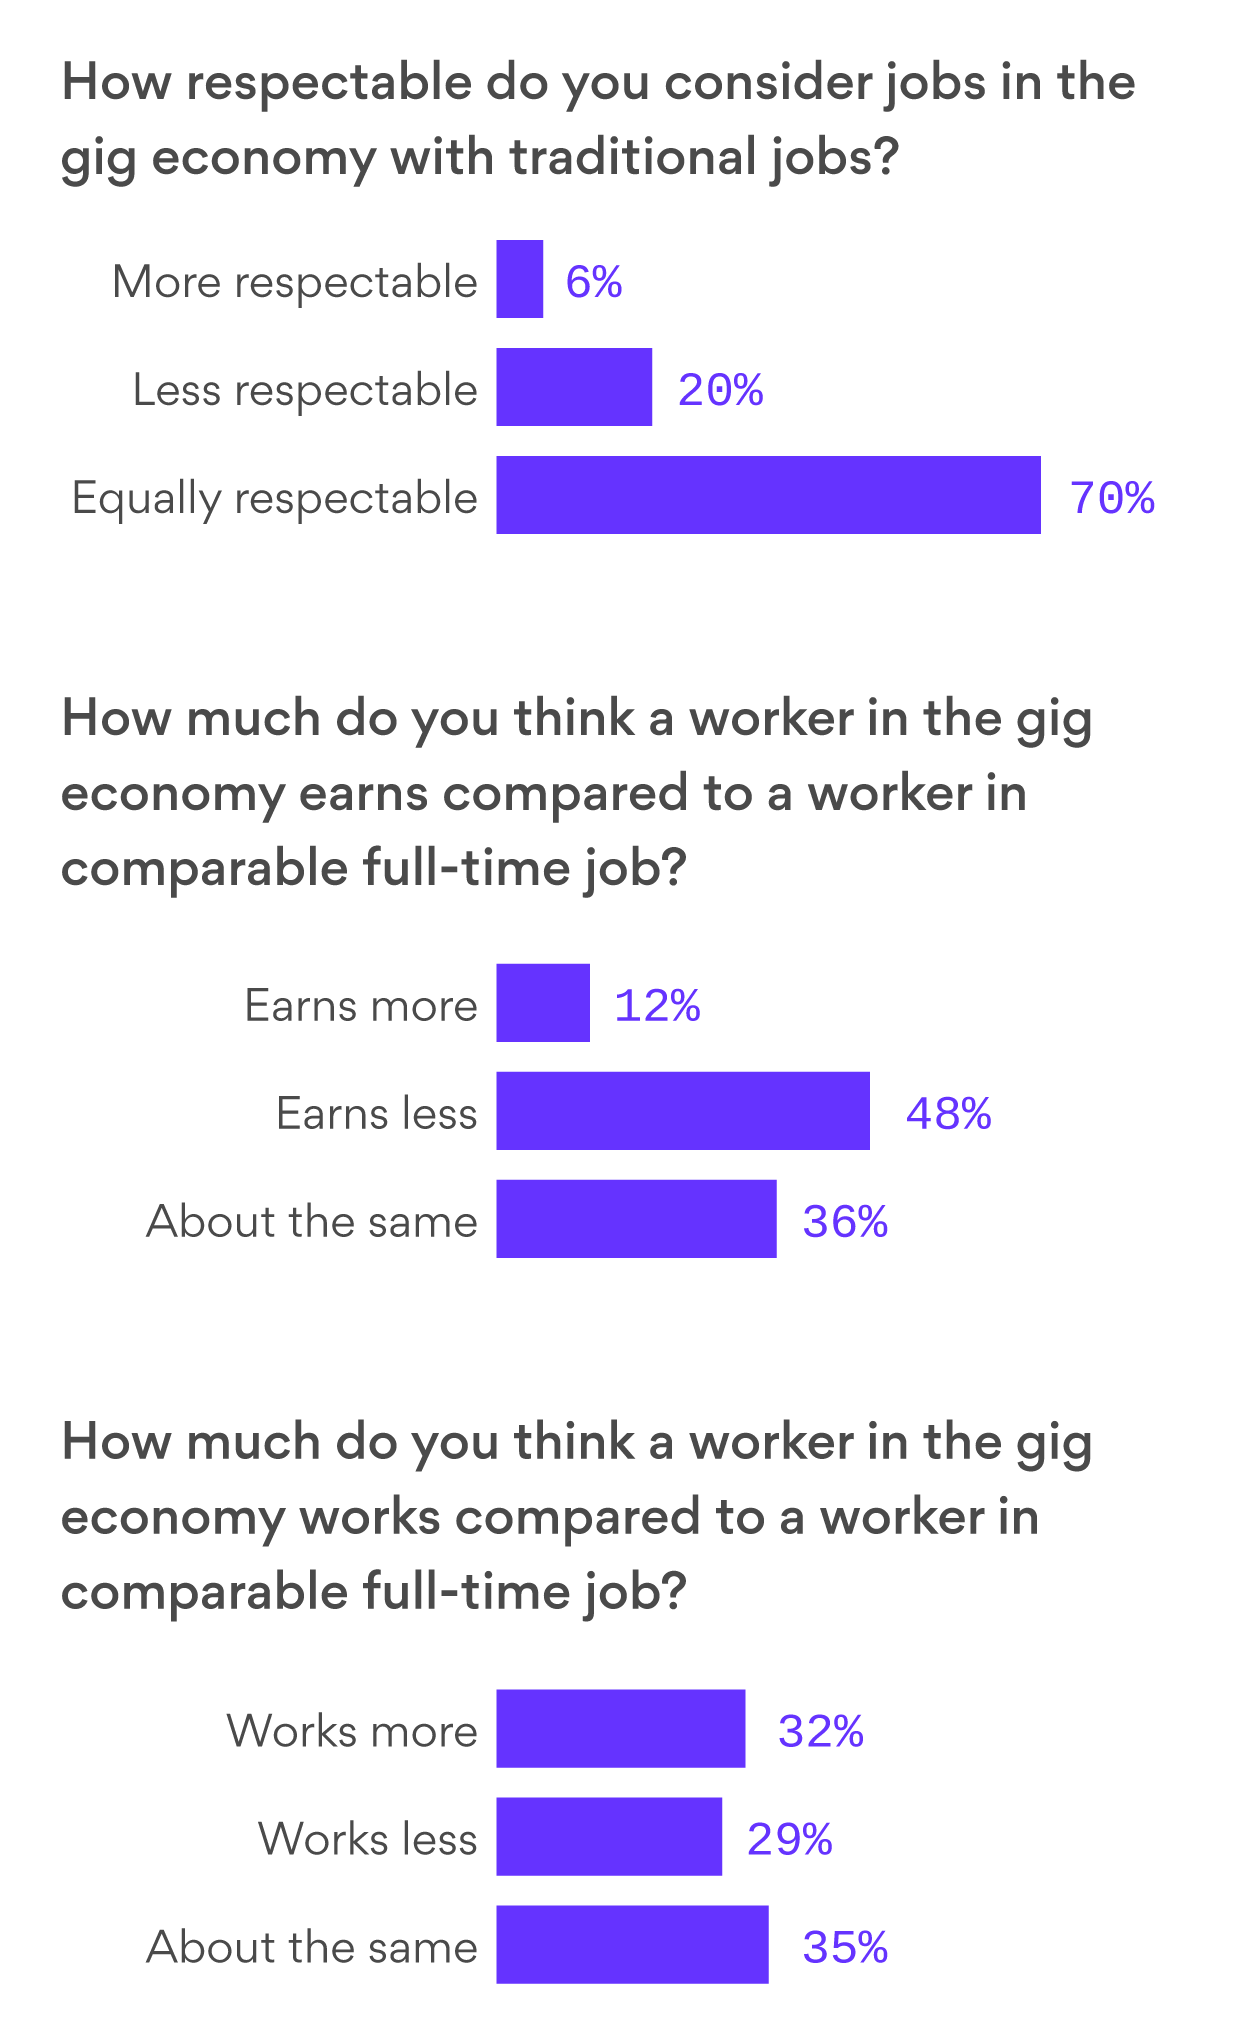 An overwhelming majority believe gig economy jobs are as respectable as traditional jobs